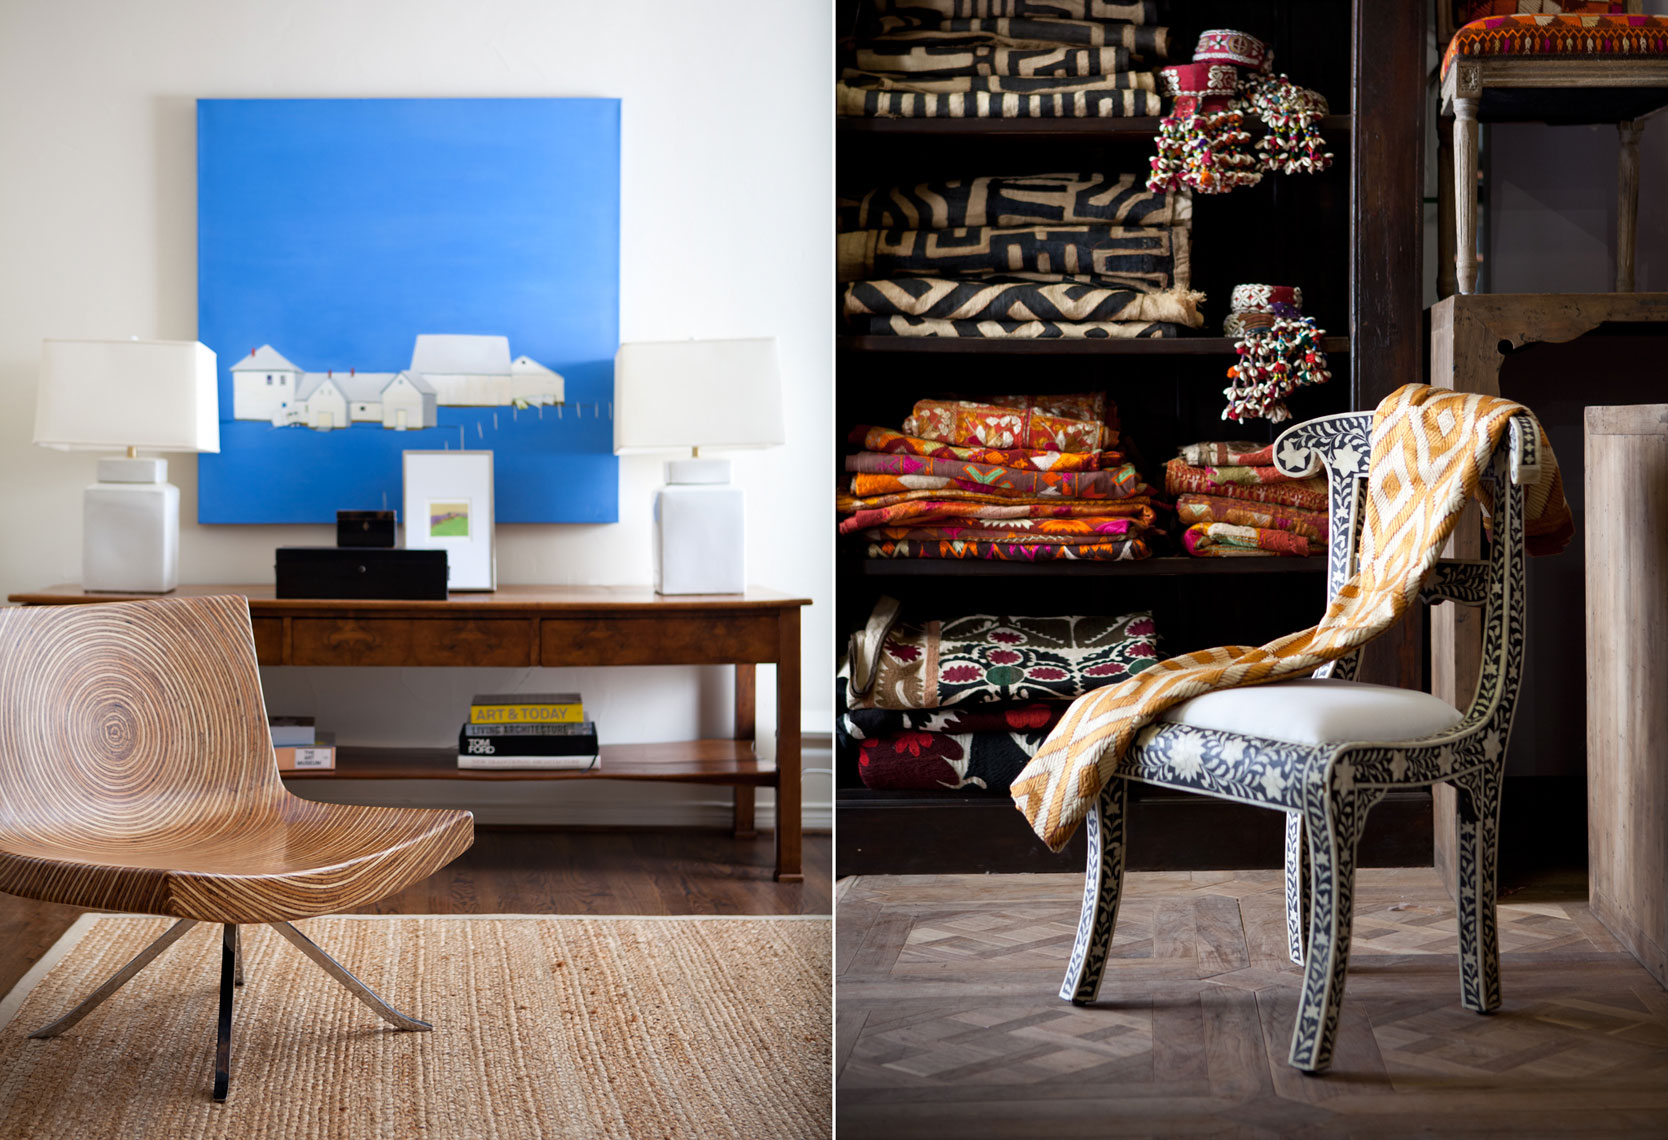 Editorial Interior Furniture Product Photography  Dallas Texas for D Magazine